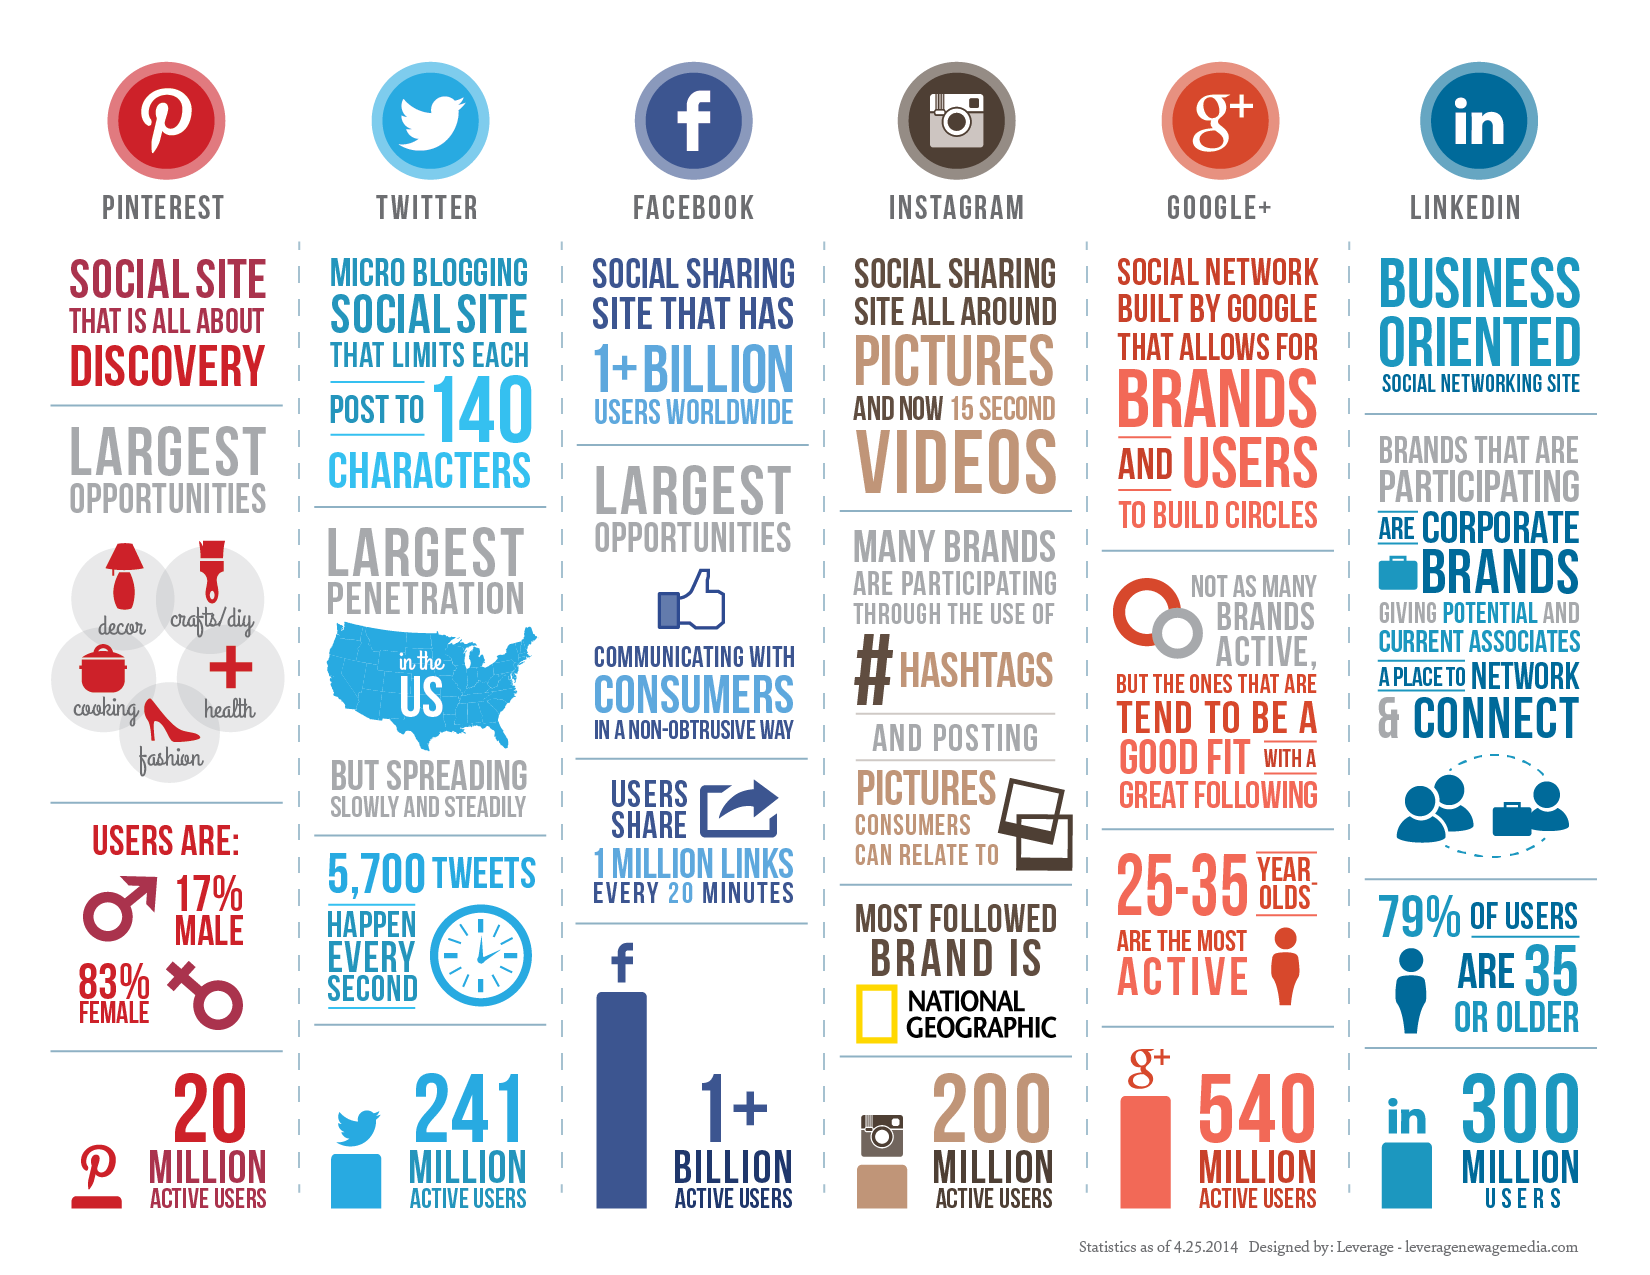 Details on all social media infographic